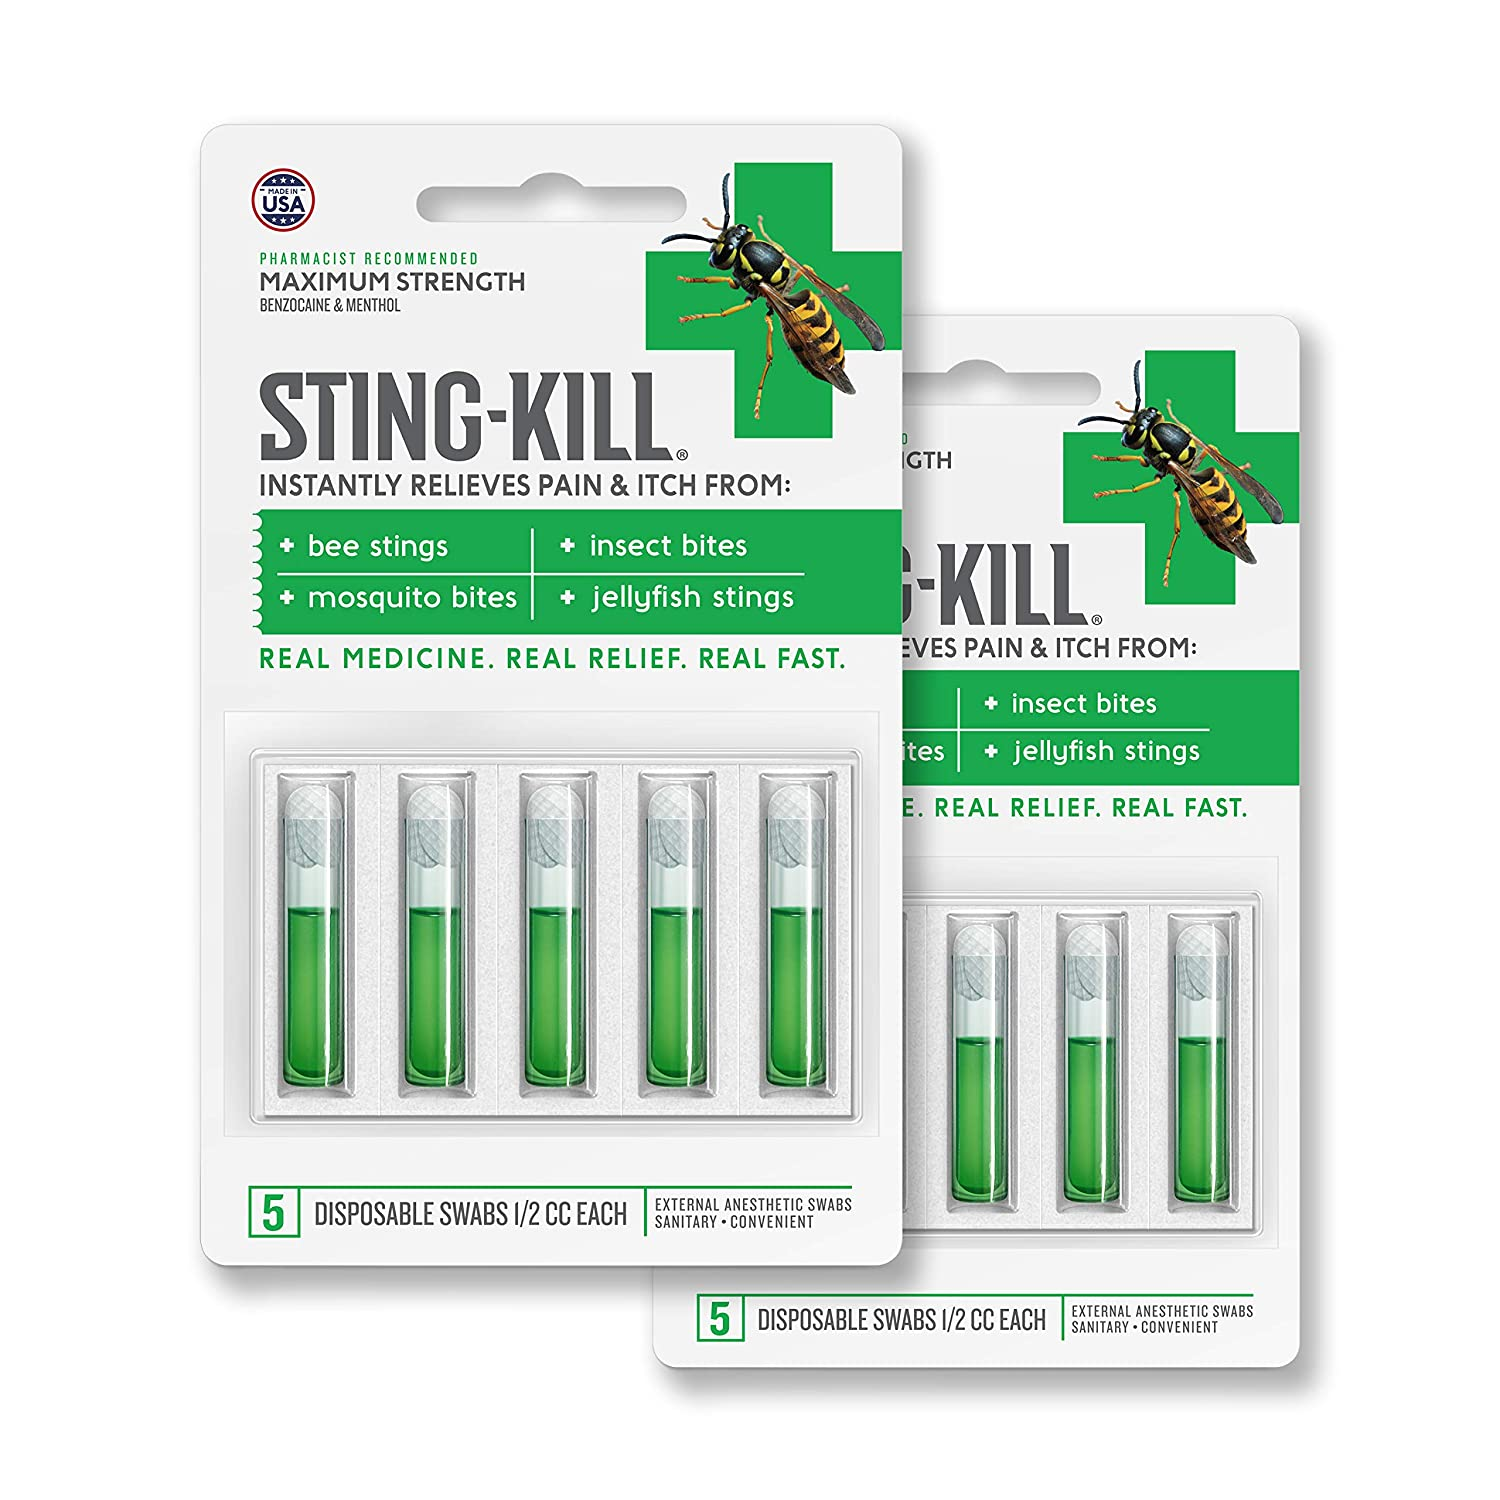 Amazon.com : Sting-Kill First Aid Anesthetic Swabs, Instant Pain + ...